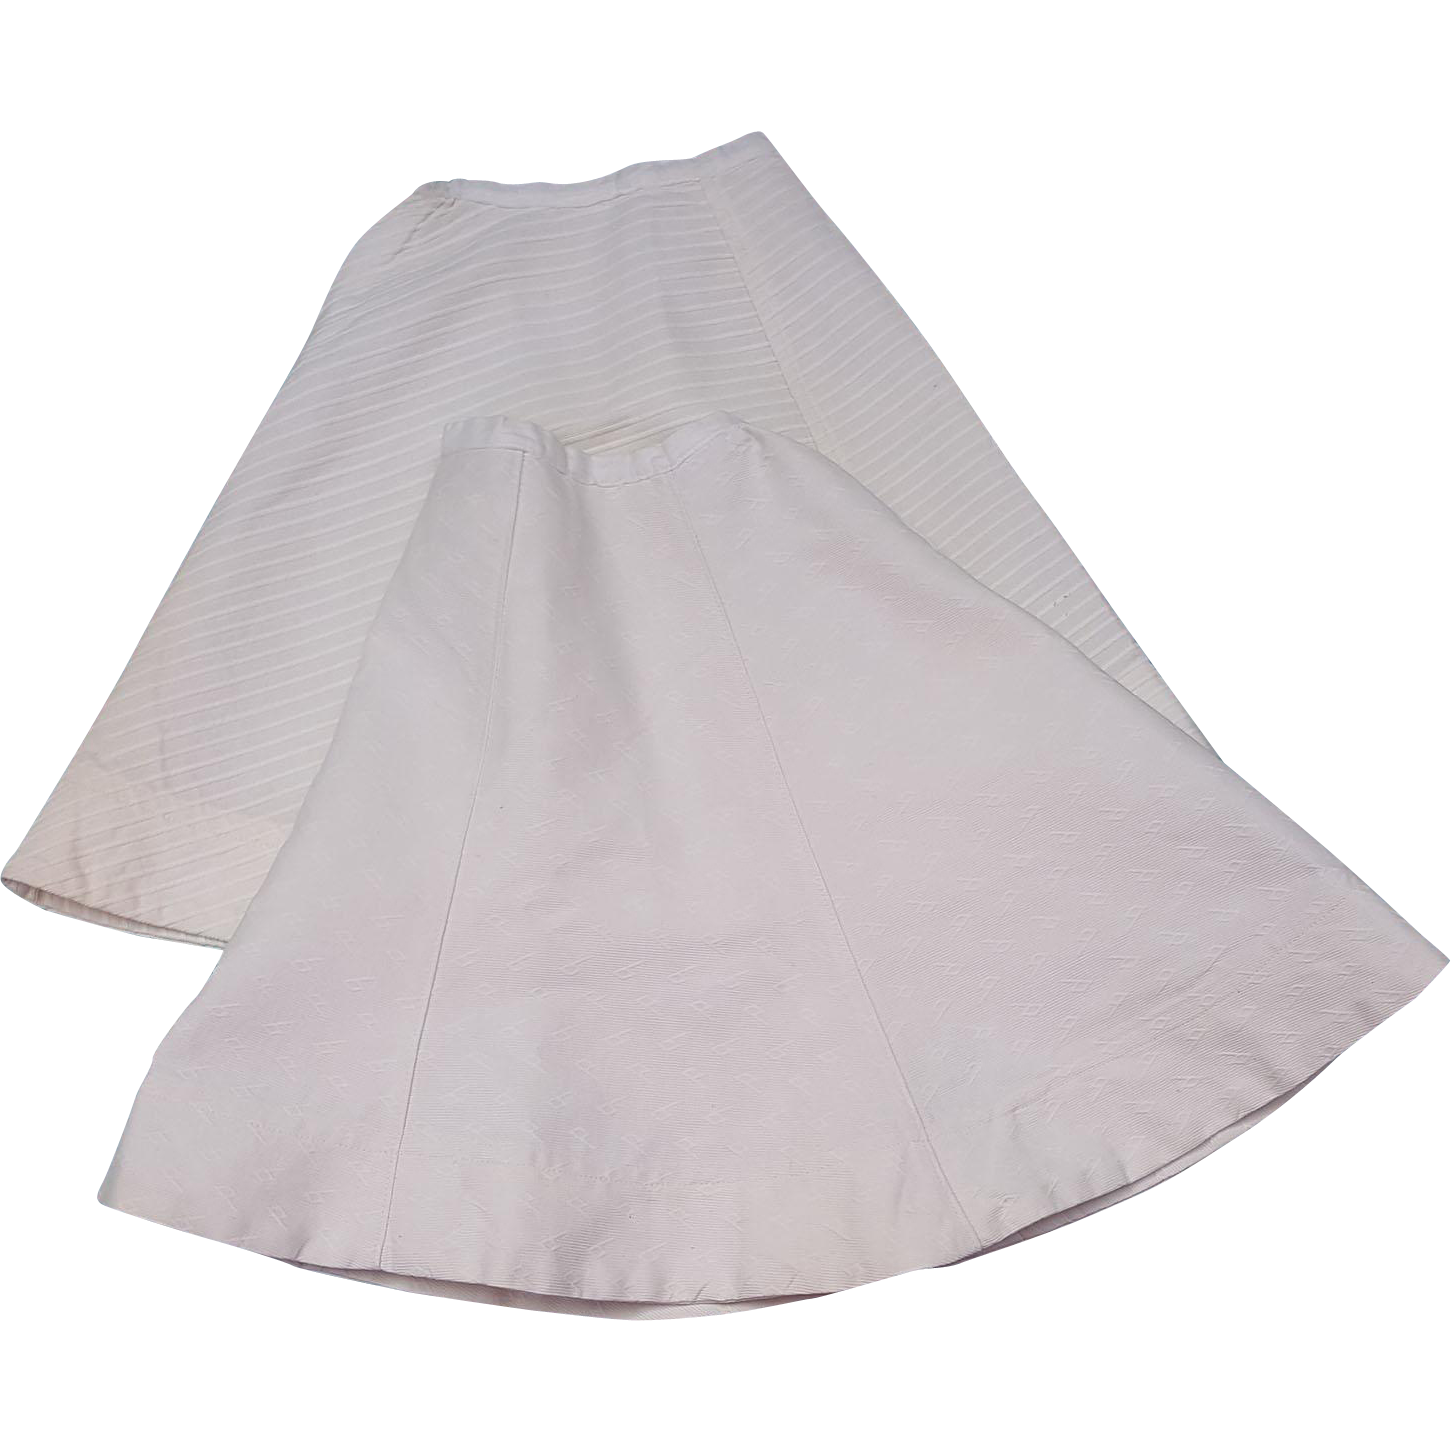 Pair white antique doll skirts full length A-line patterned white material  11 inch waists